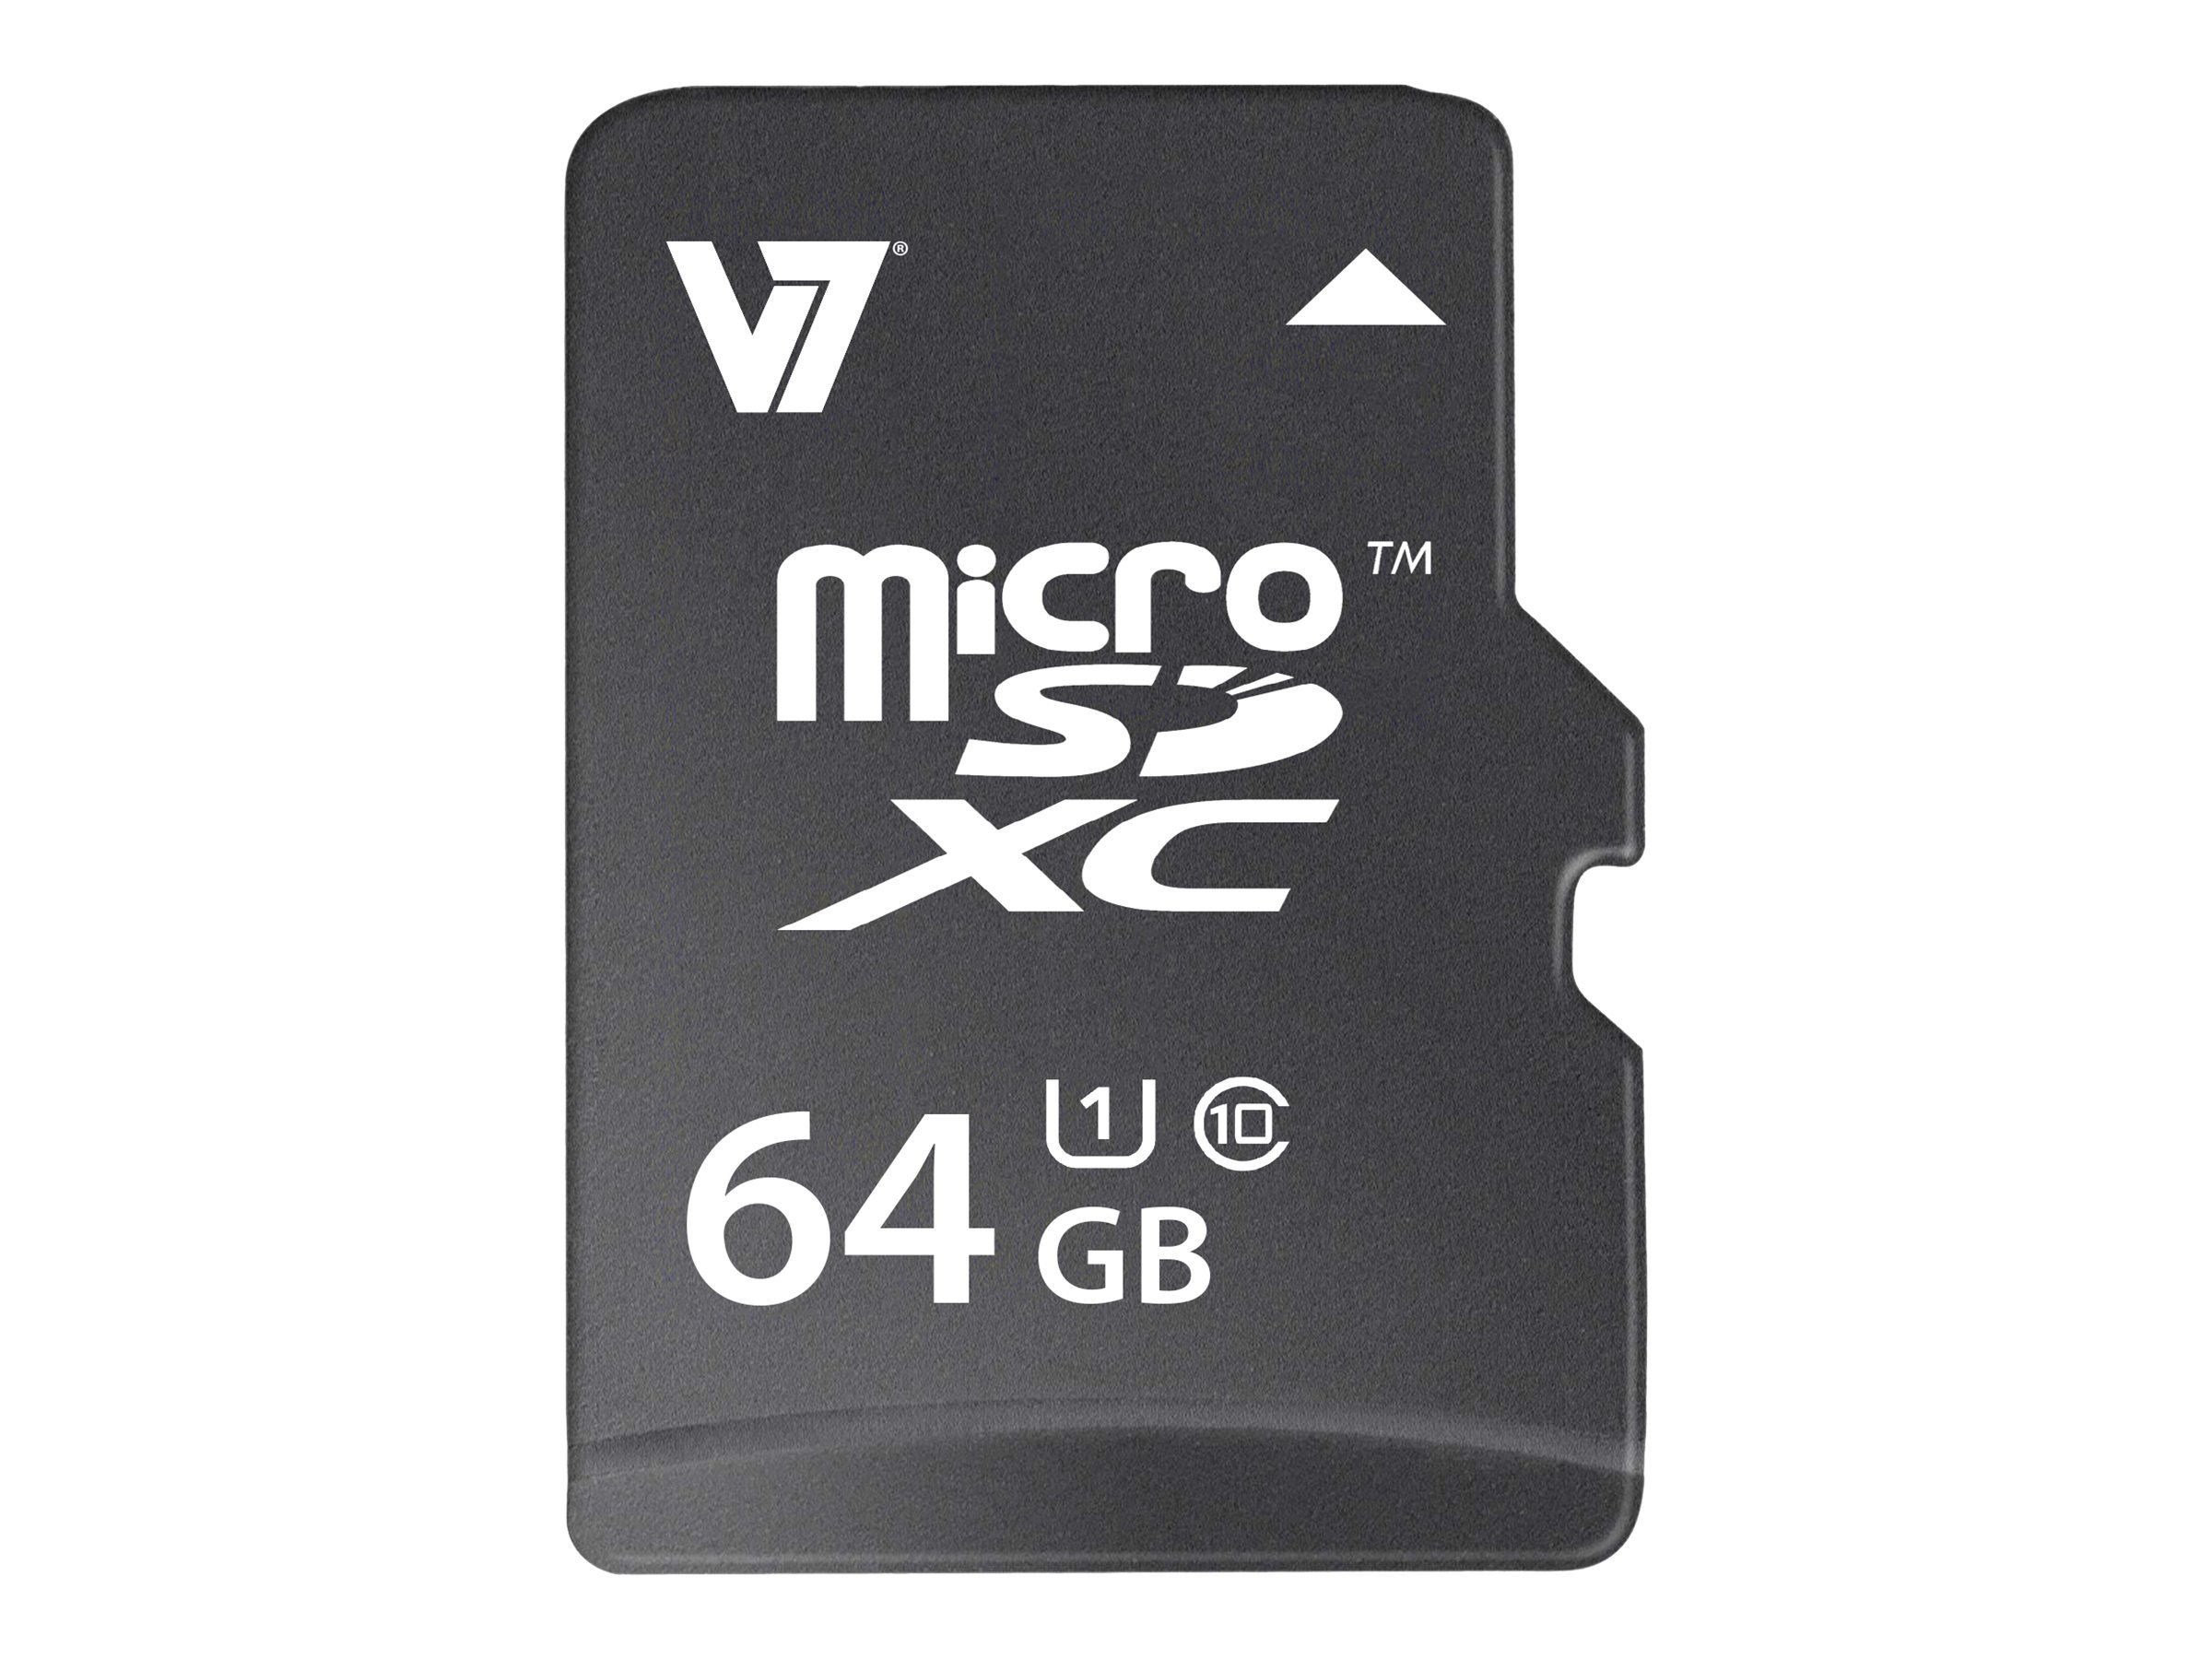 V7 64GB Micro SDXC Flash Memory Card, Class 10